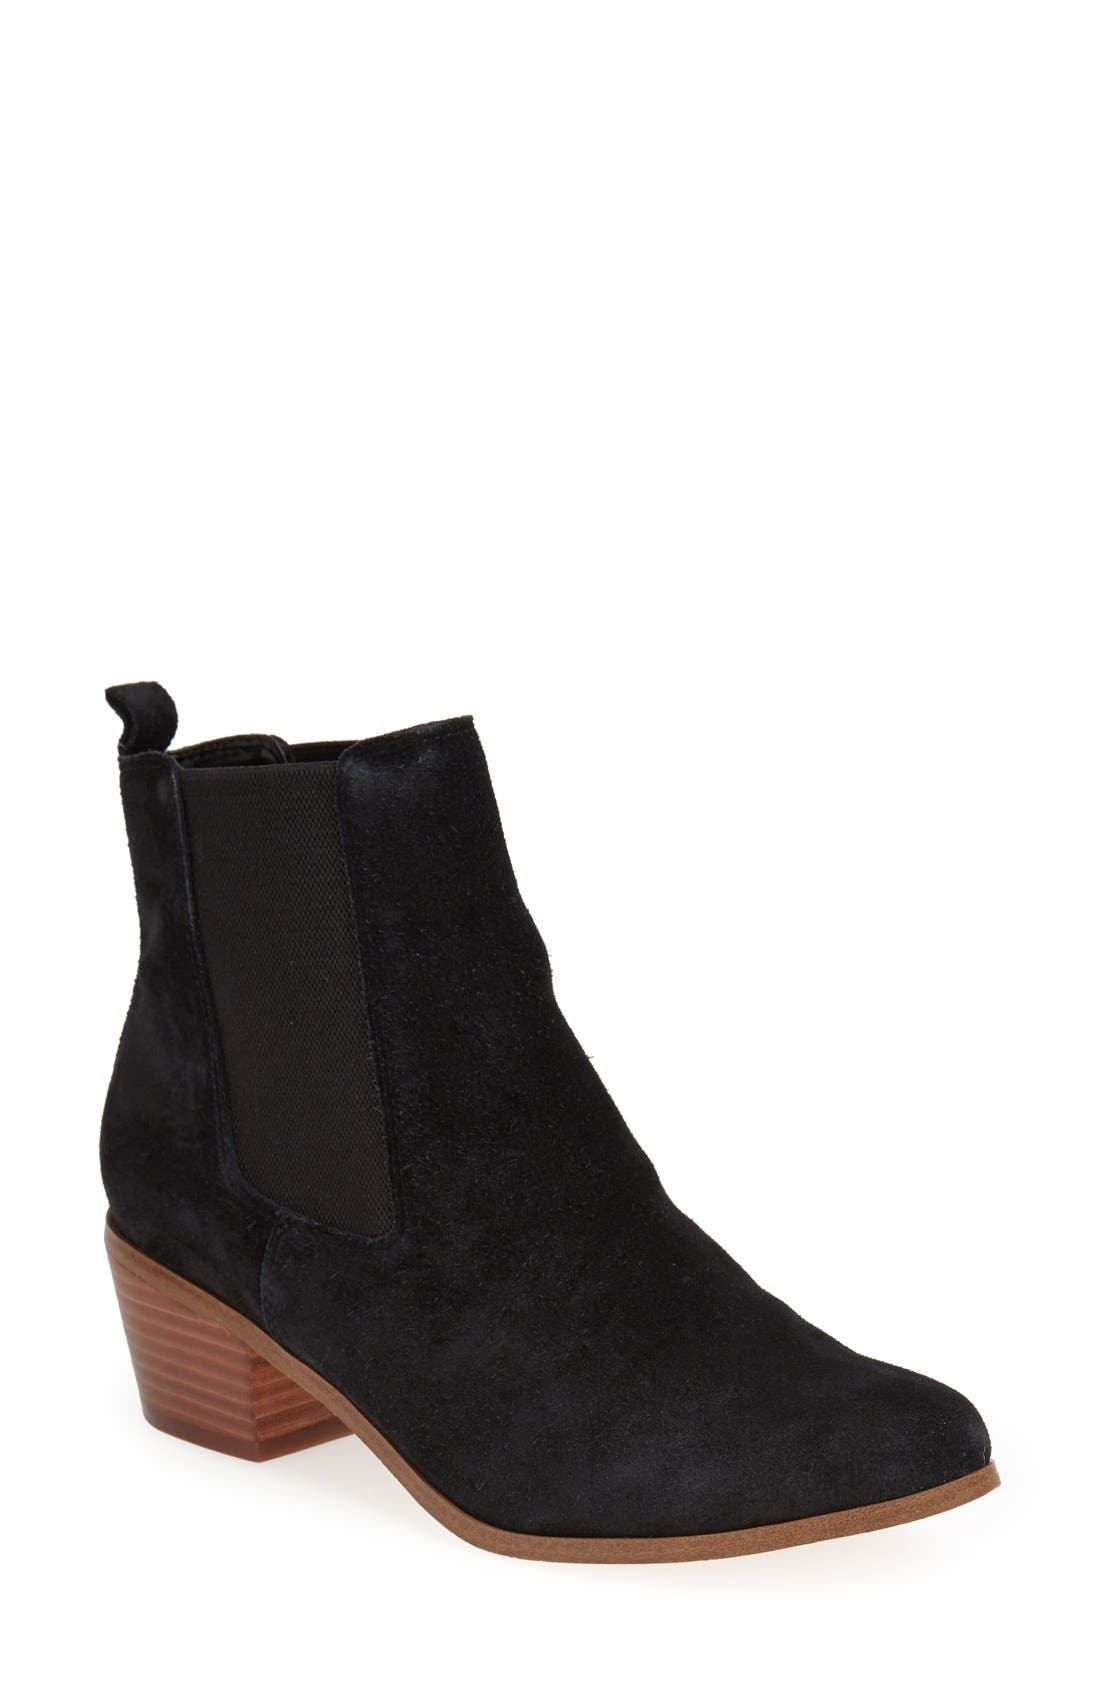 Alternate Image 1 Selected - Topshop 'Annex' Chelsea Ankle Boot (Women)